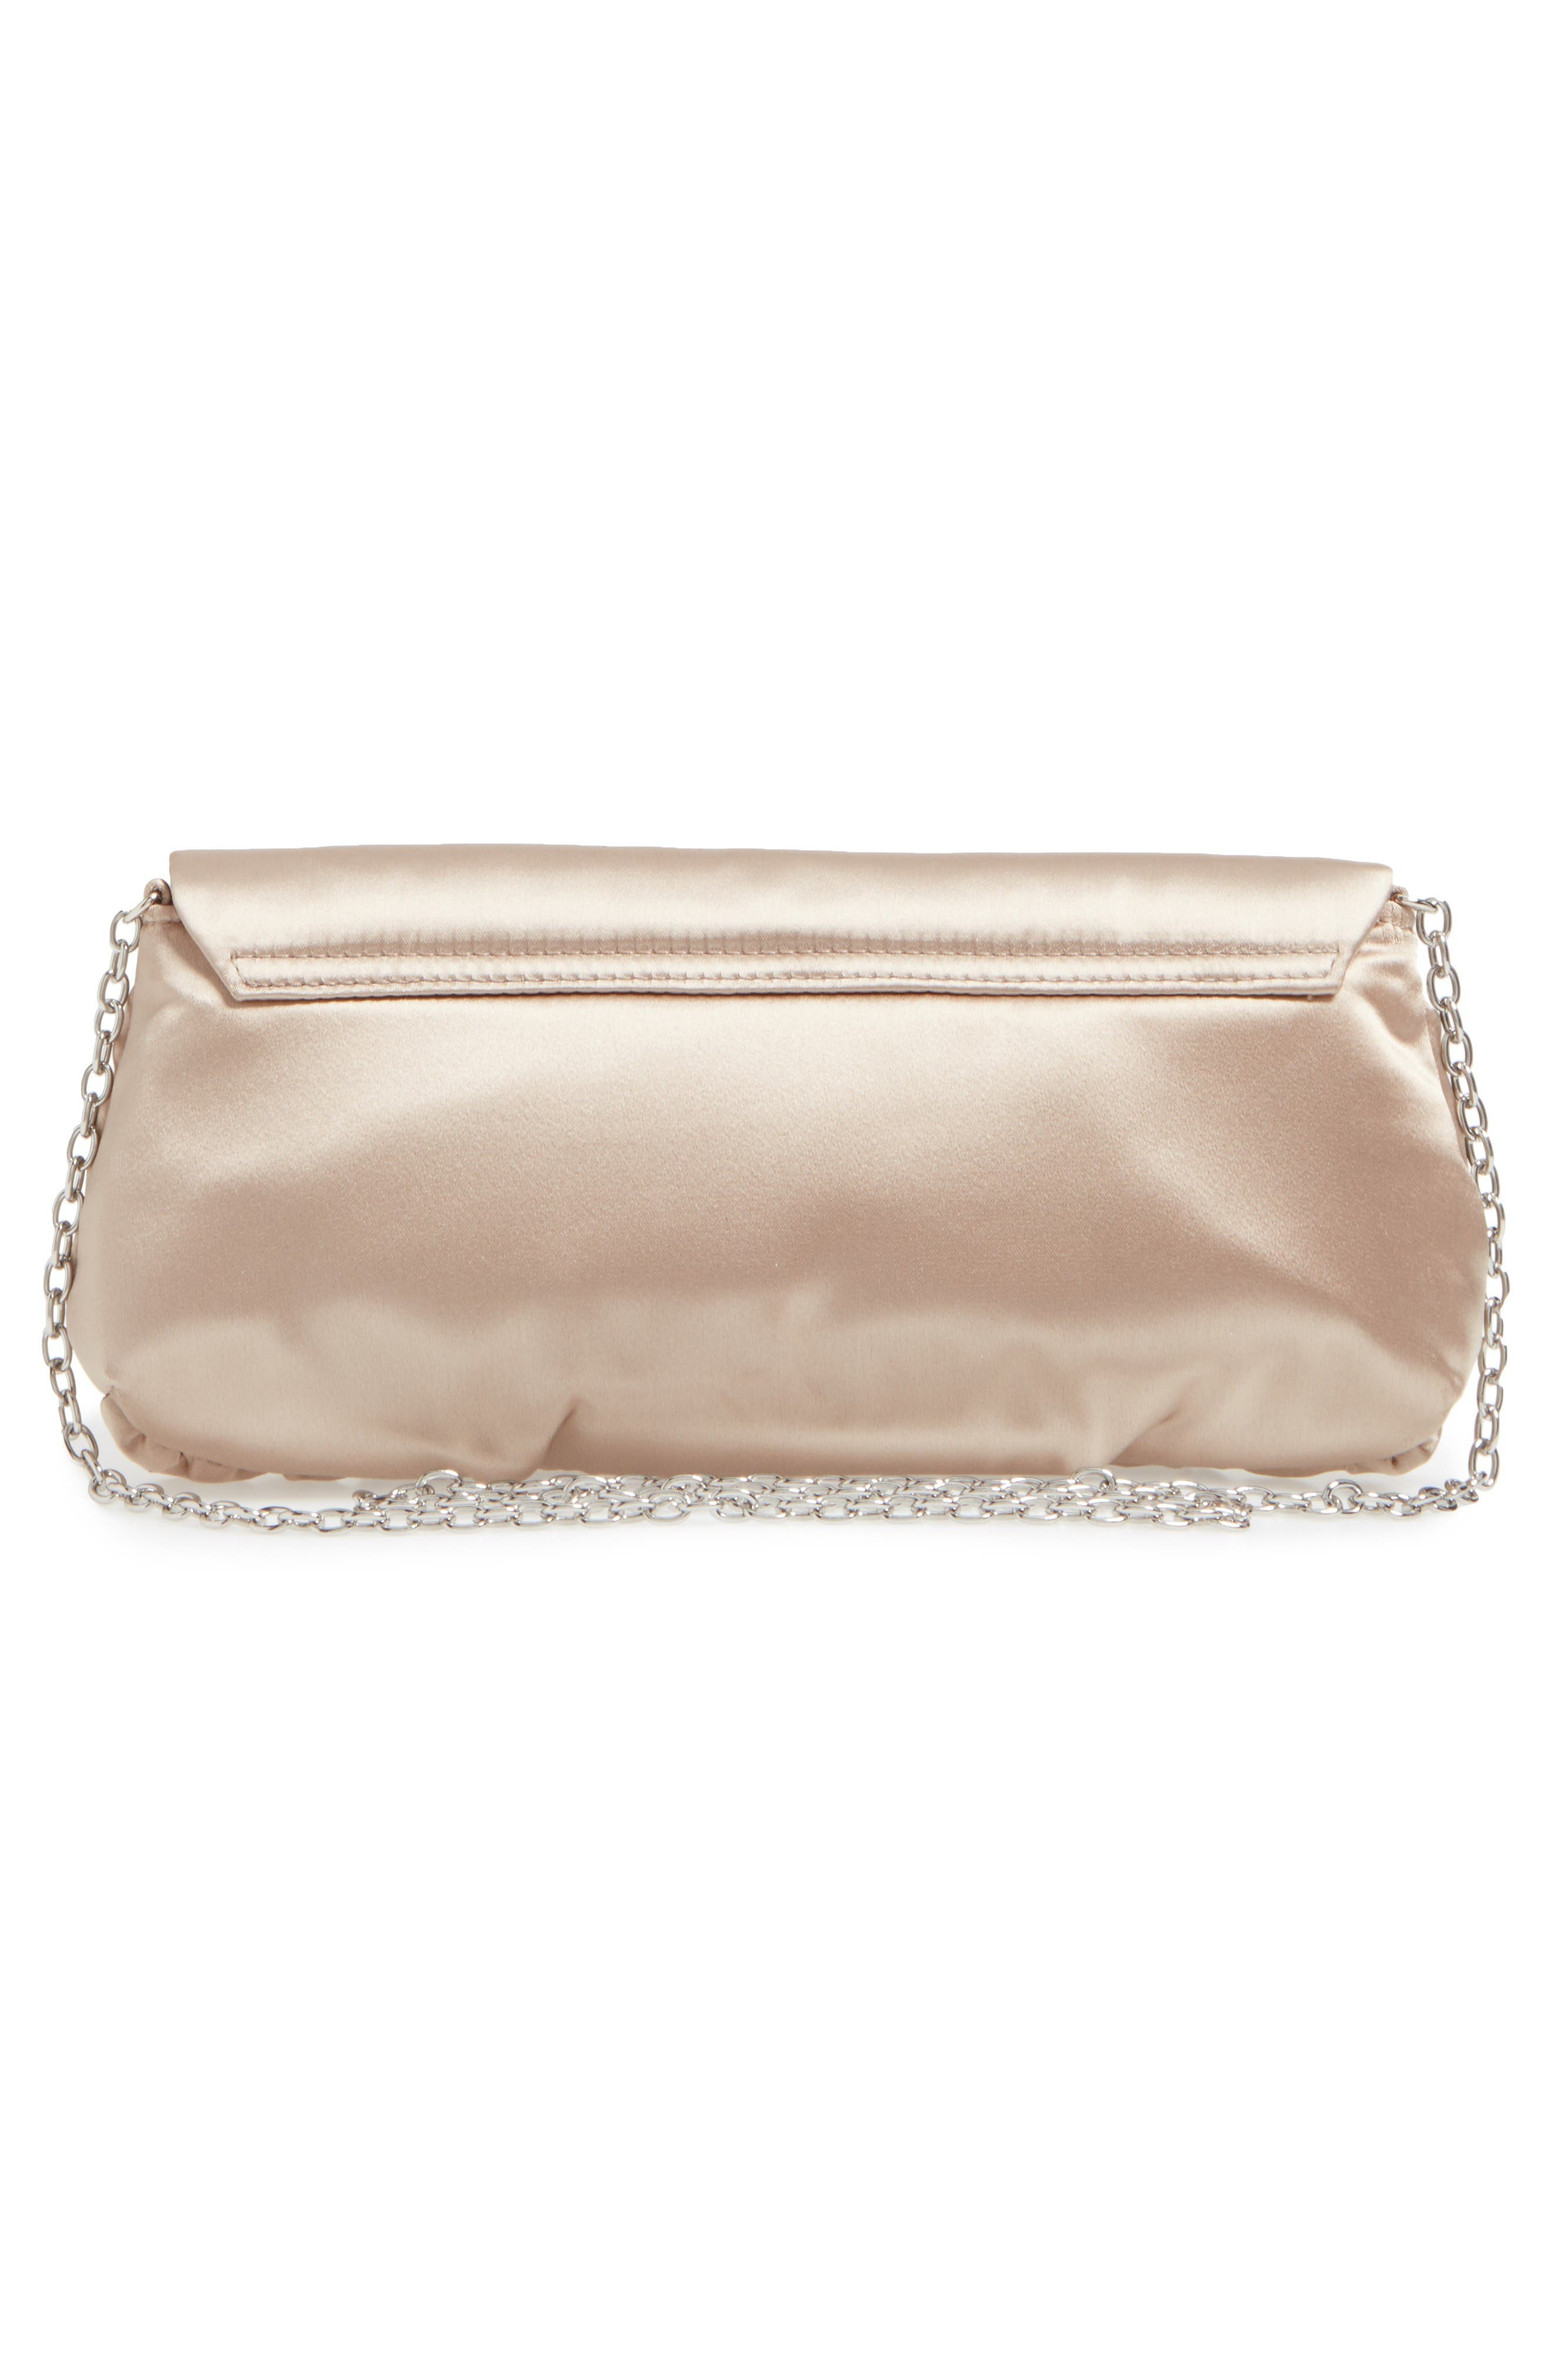 Caracas Crystal Embellished Clutch,                             Alternate thumbnail 2, color,                             Stone